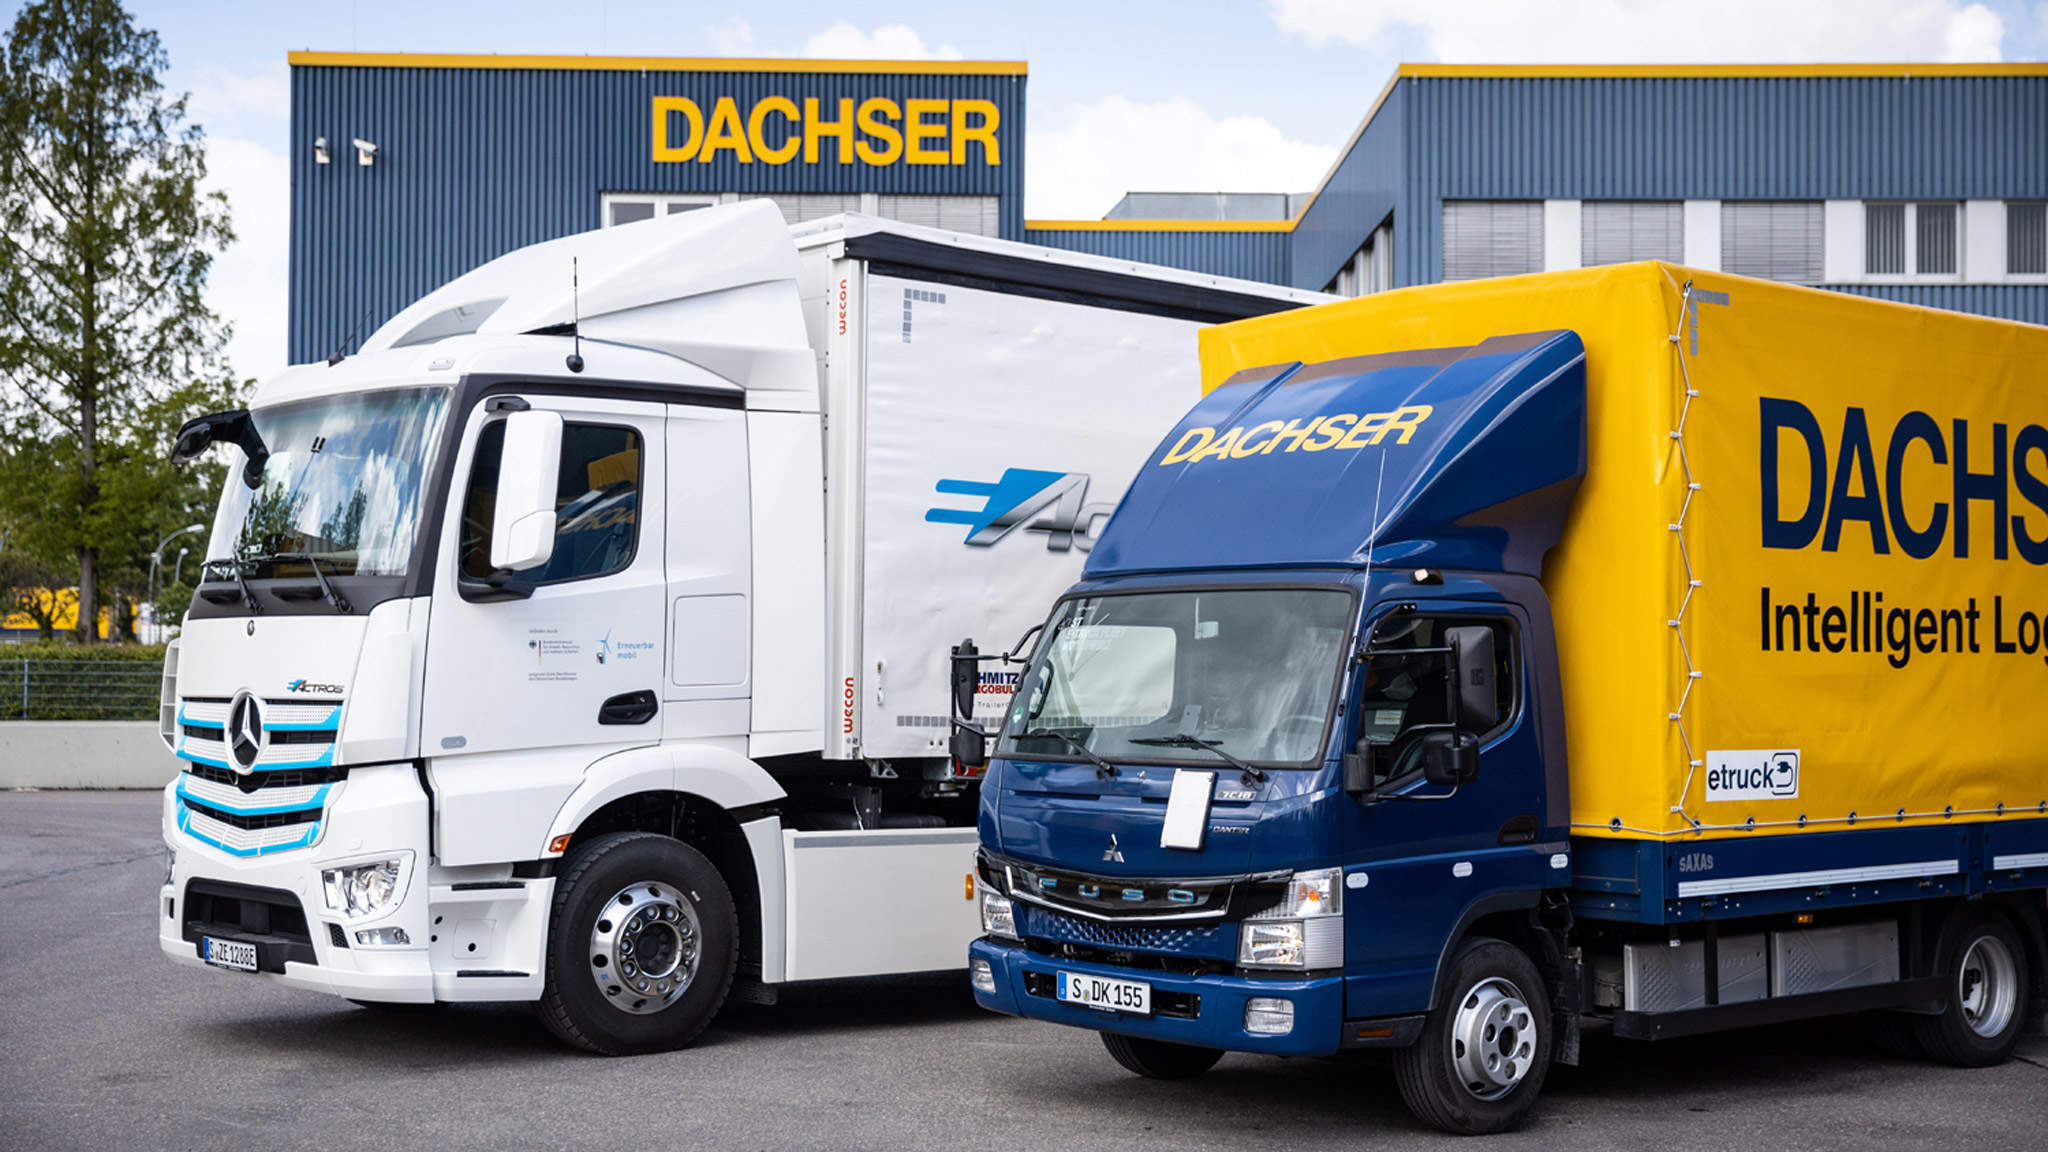 All-electric trucks enabling DACHSER Emission-Free Delivery in Stuttgart: Mercedes-Benz eActros (left) and FUSO eCanter (right)